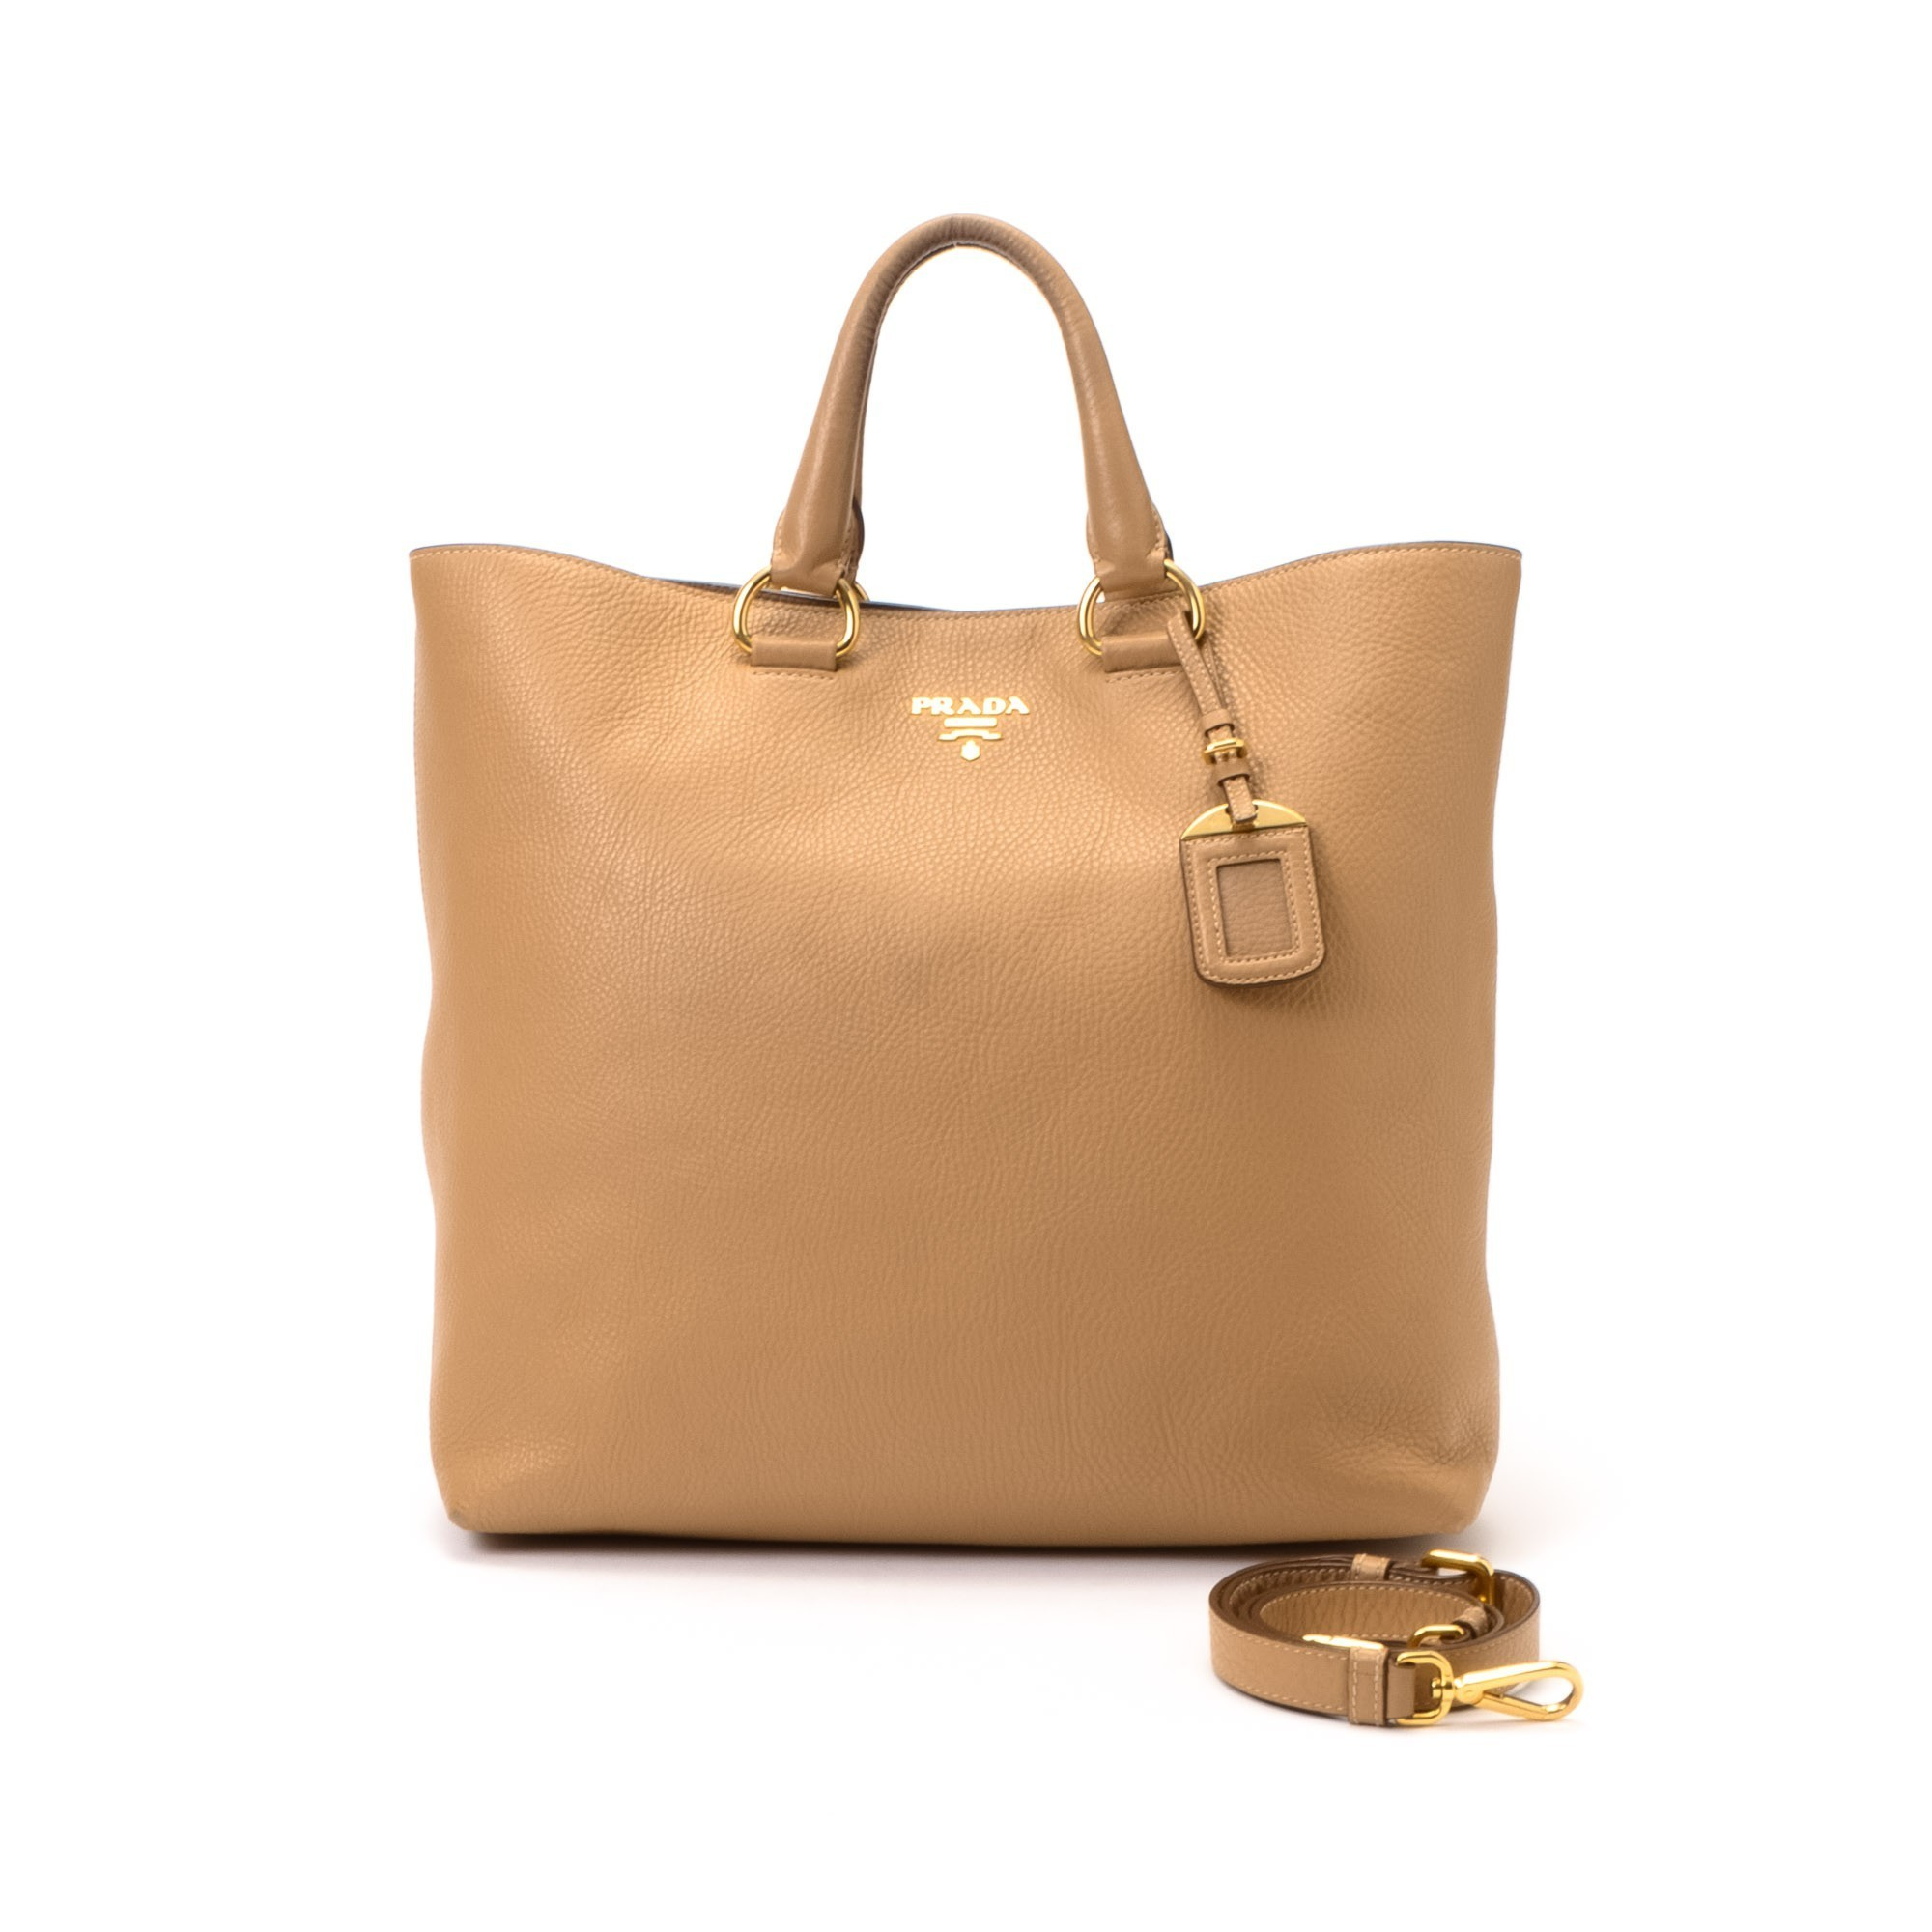 Prada Bag Beige Prada Two Way Bag Beige